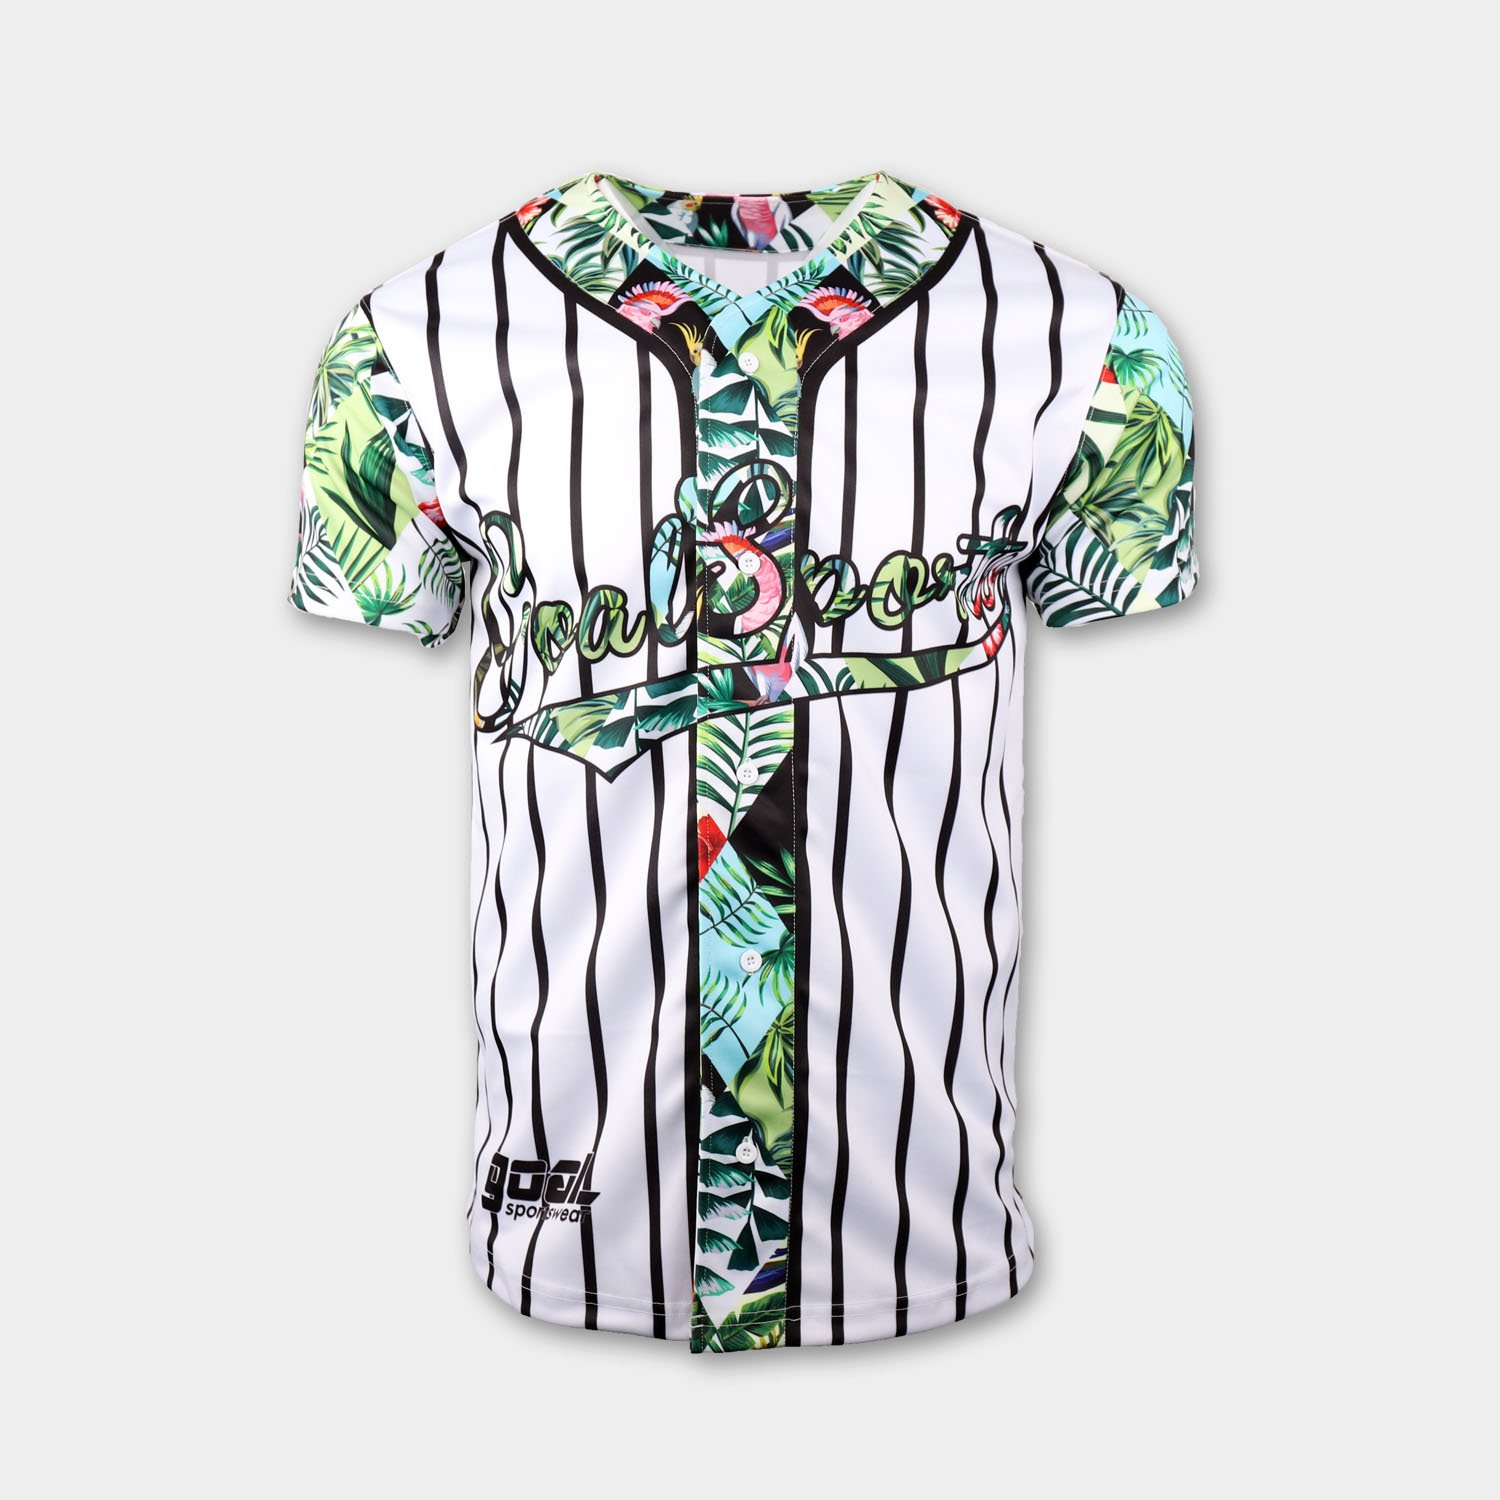 button down baseball jersey front